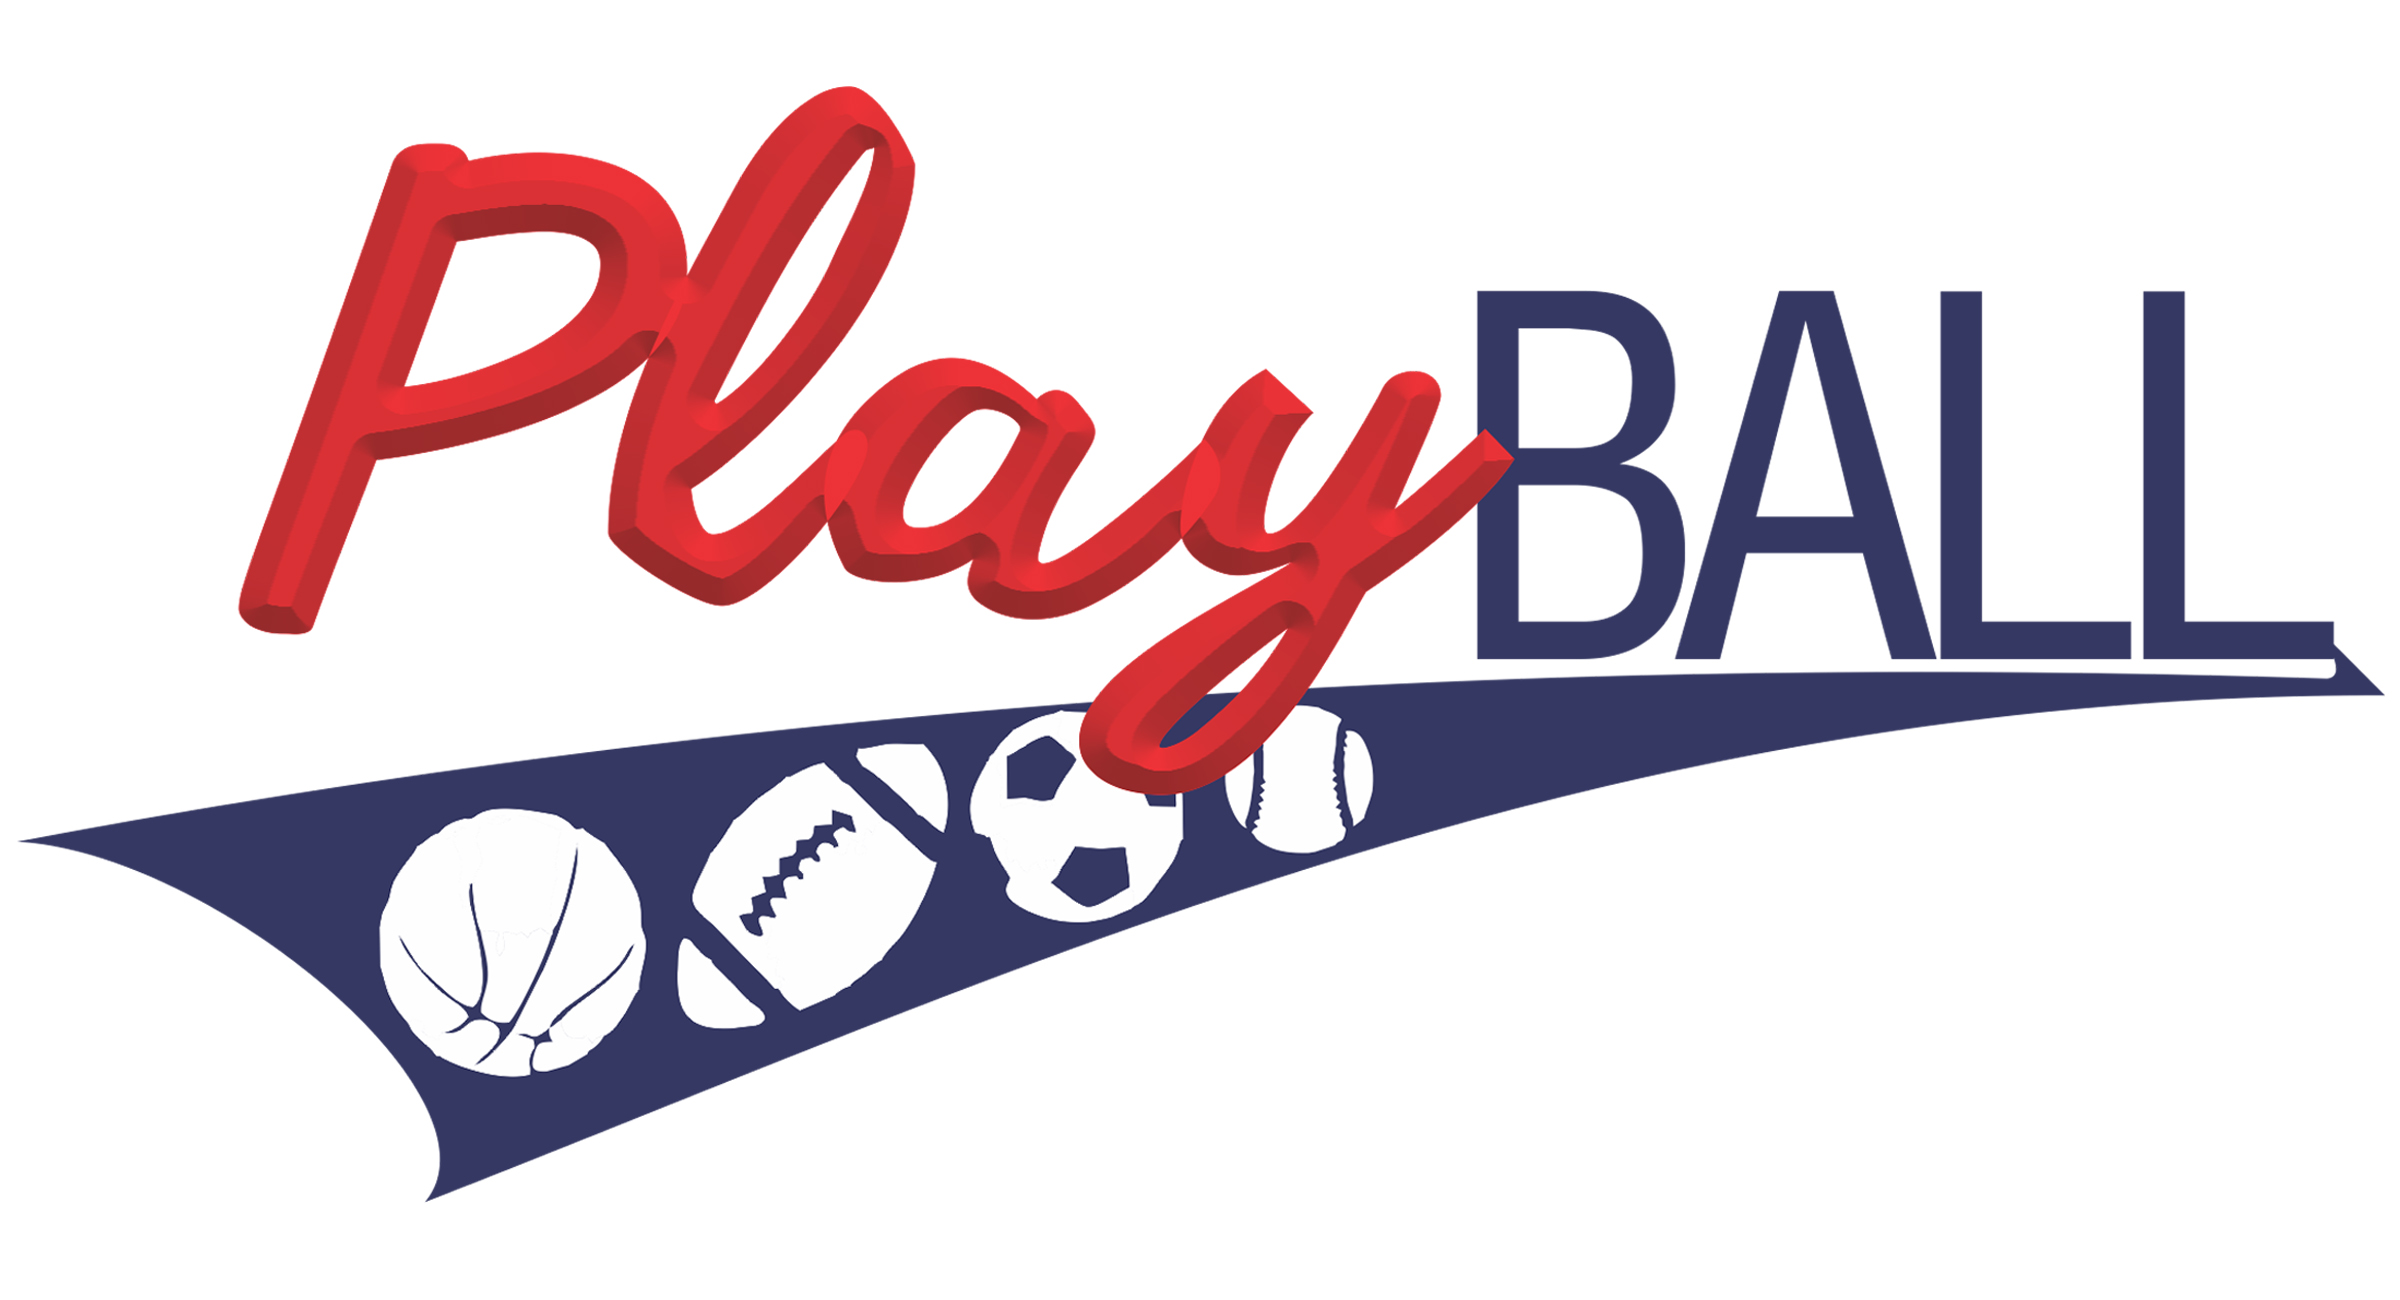 Playball logo